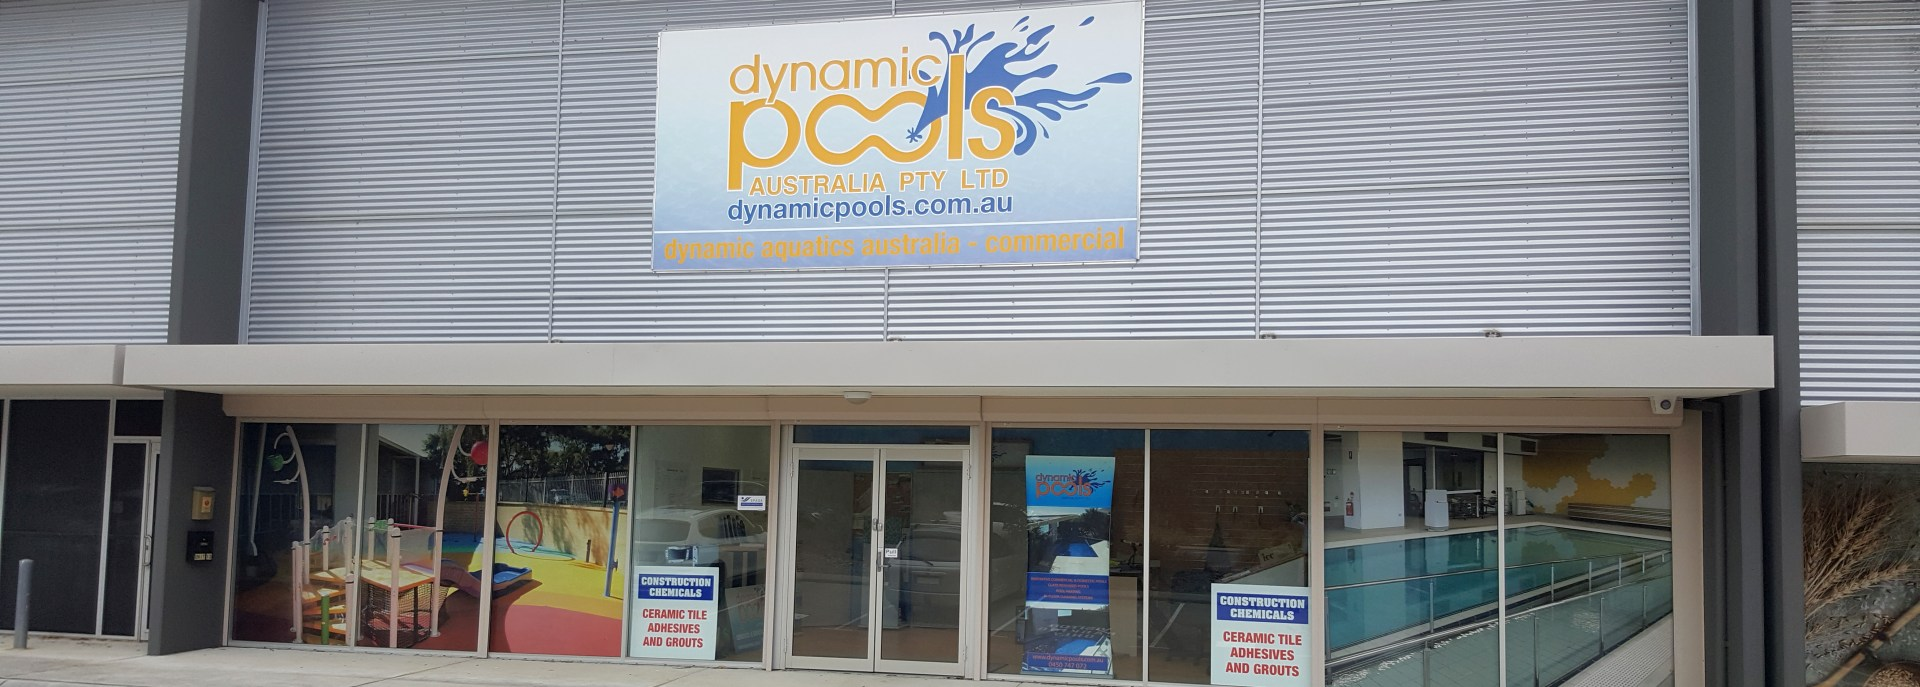 Dynamic Pools Perth Store Front